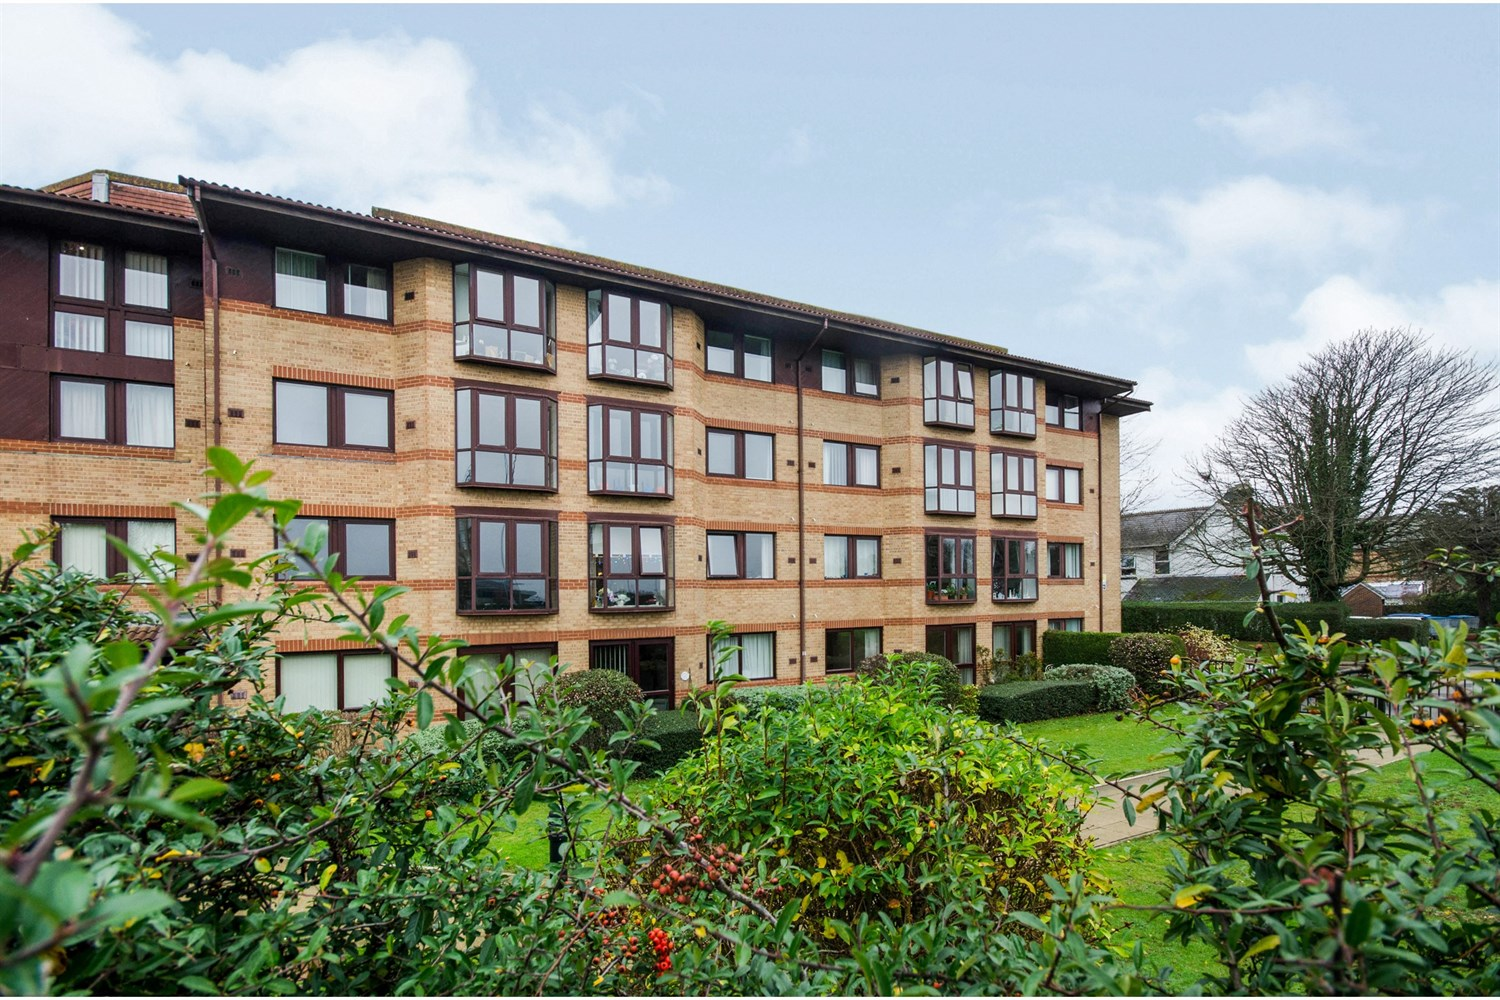 Bournemouth, Dorset 1 bedroom to let